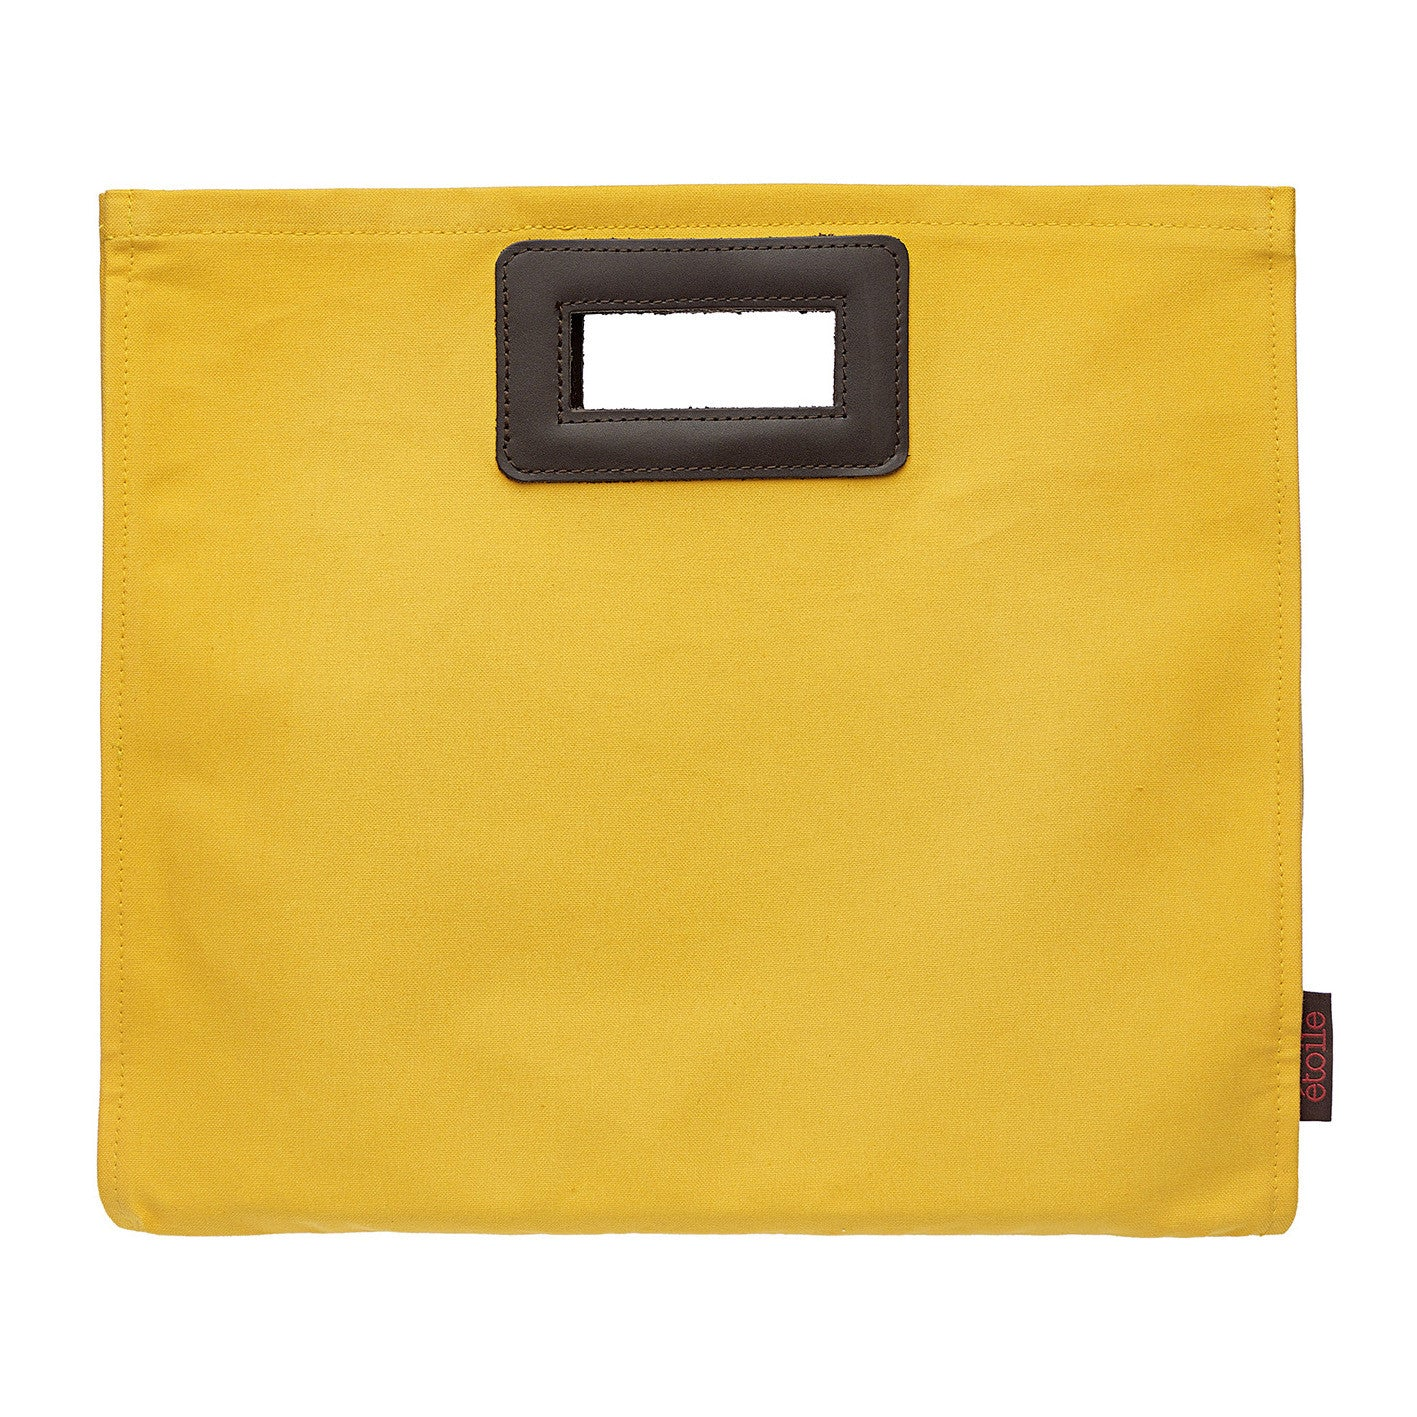 Stephanie Resin Coated Canvas Knitting Style Clutch Bag in Maize Yellow